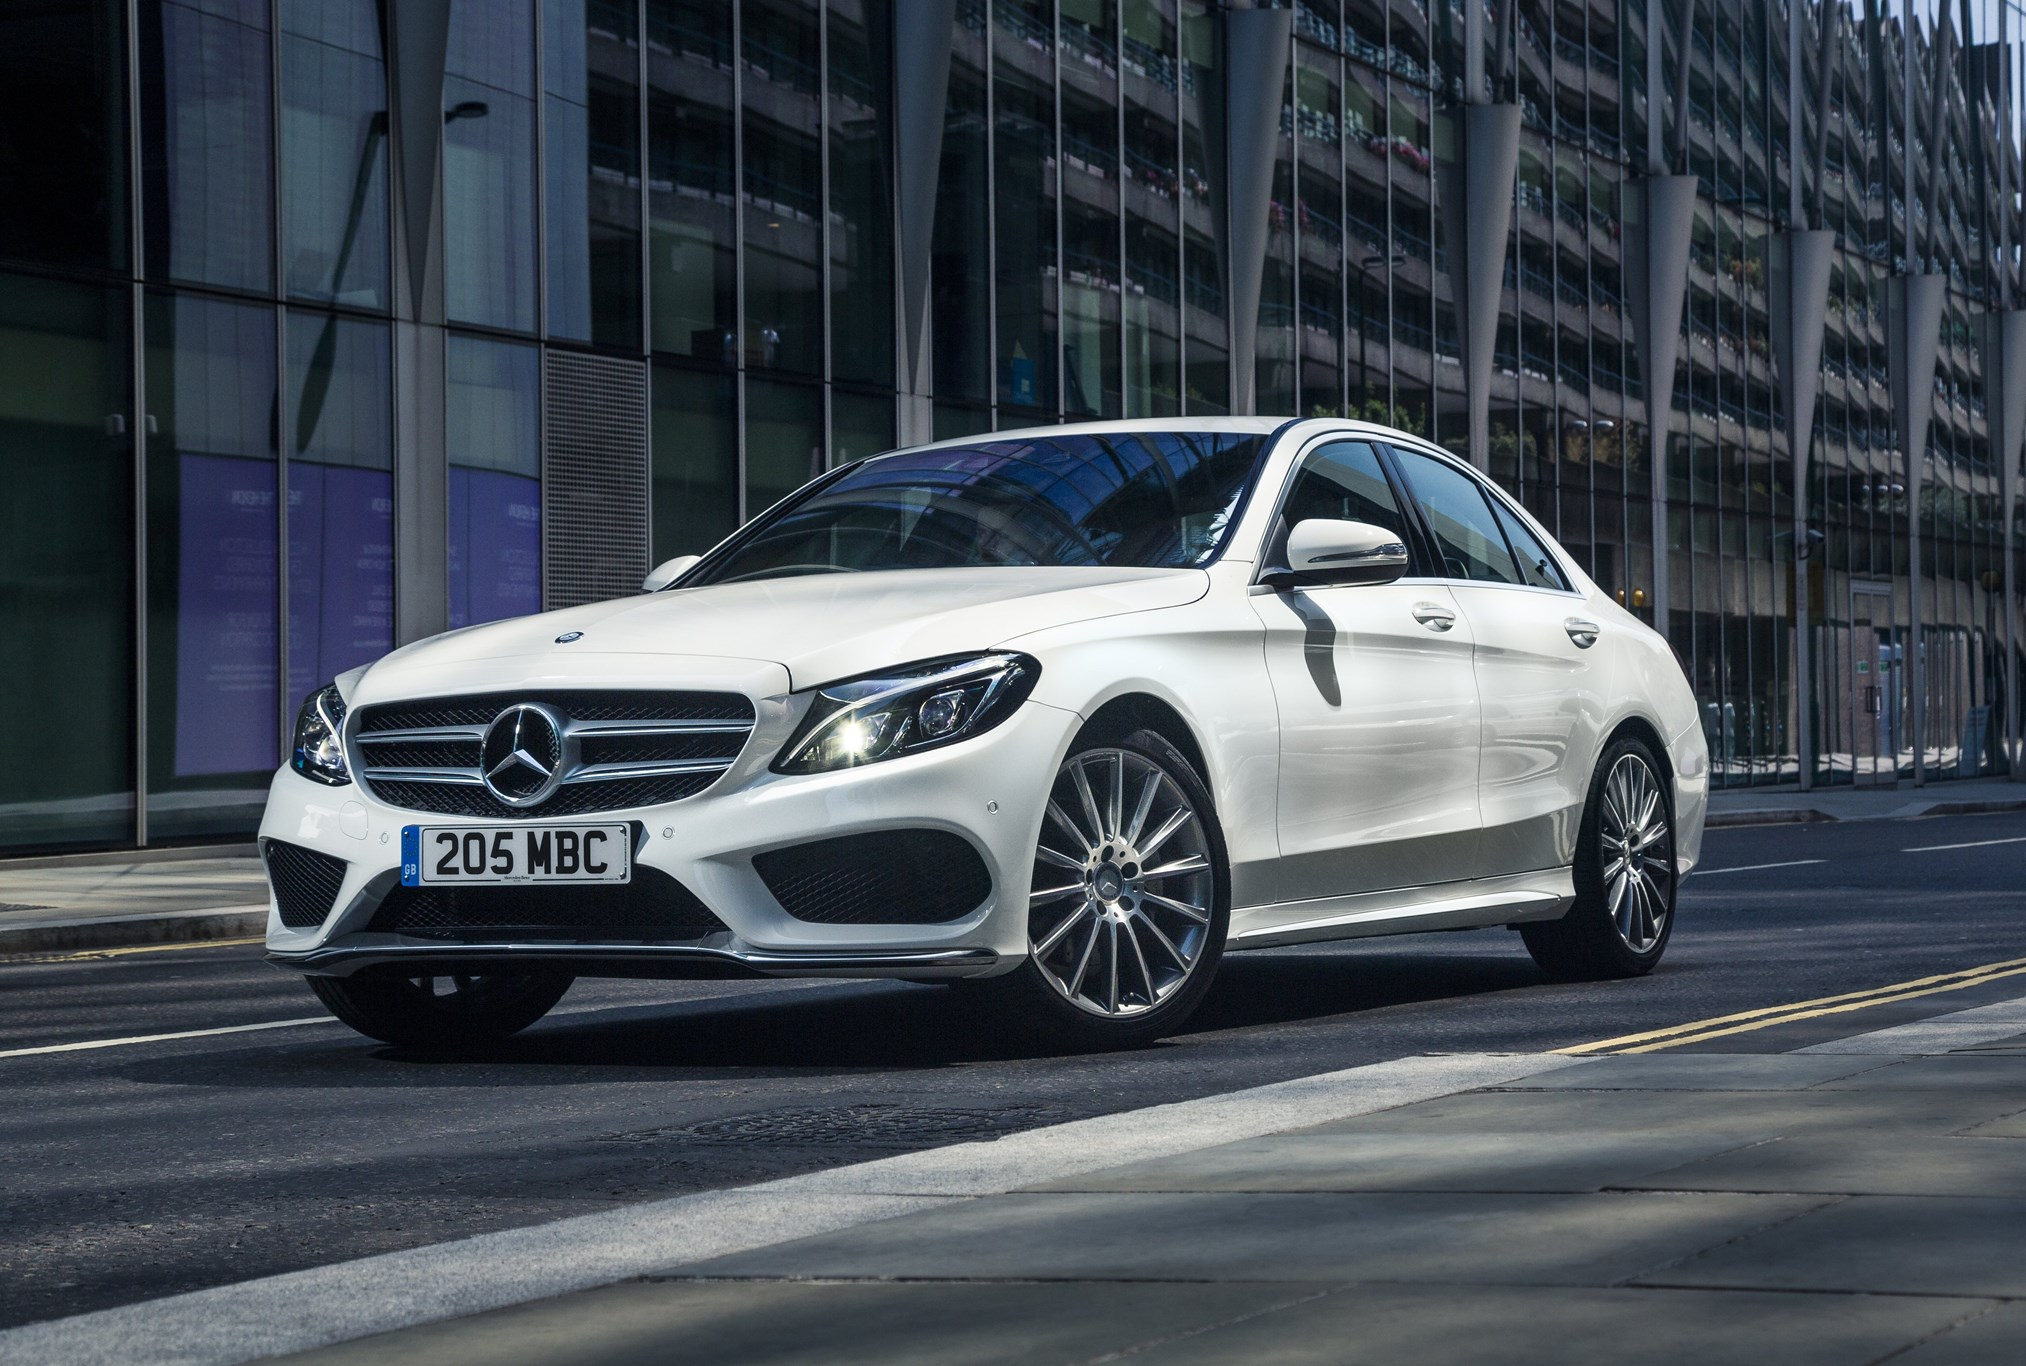 Mercedes c class by car magazine for Average insurance cost for mercedes benz c300